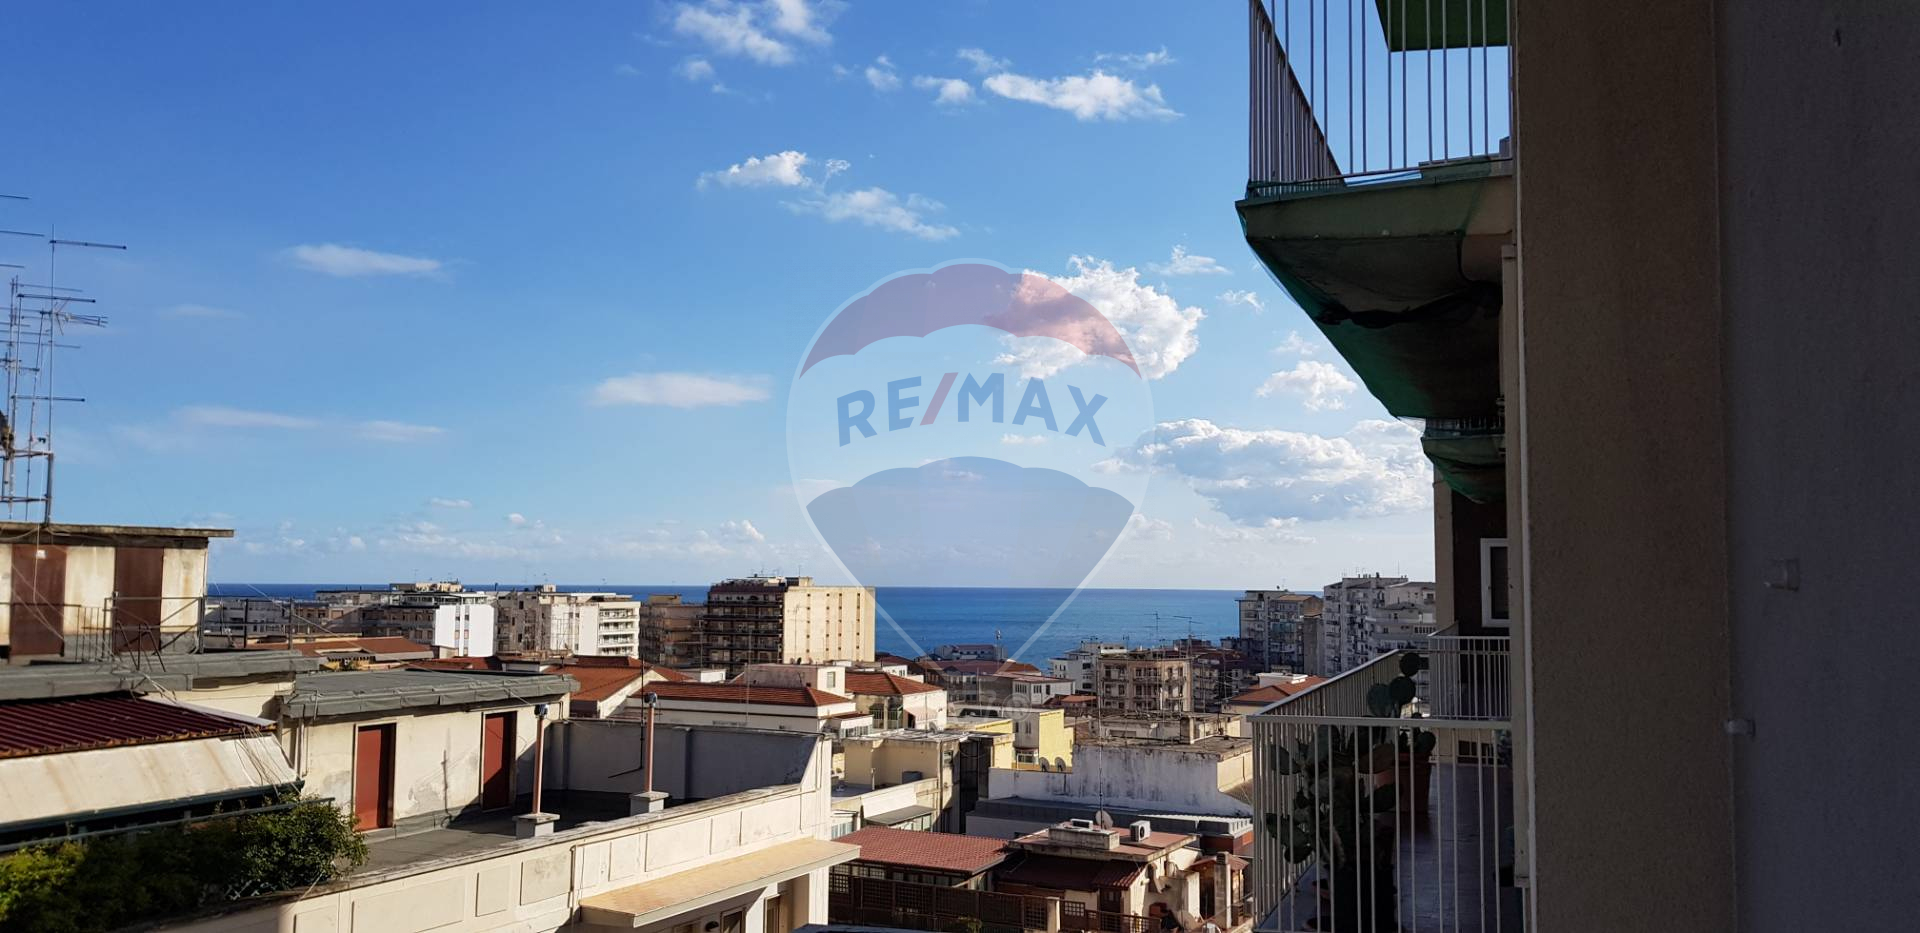 catania vendita quart: c.so italia - via leopardi re/max casa trend